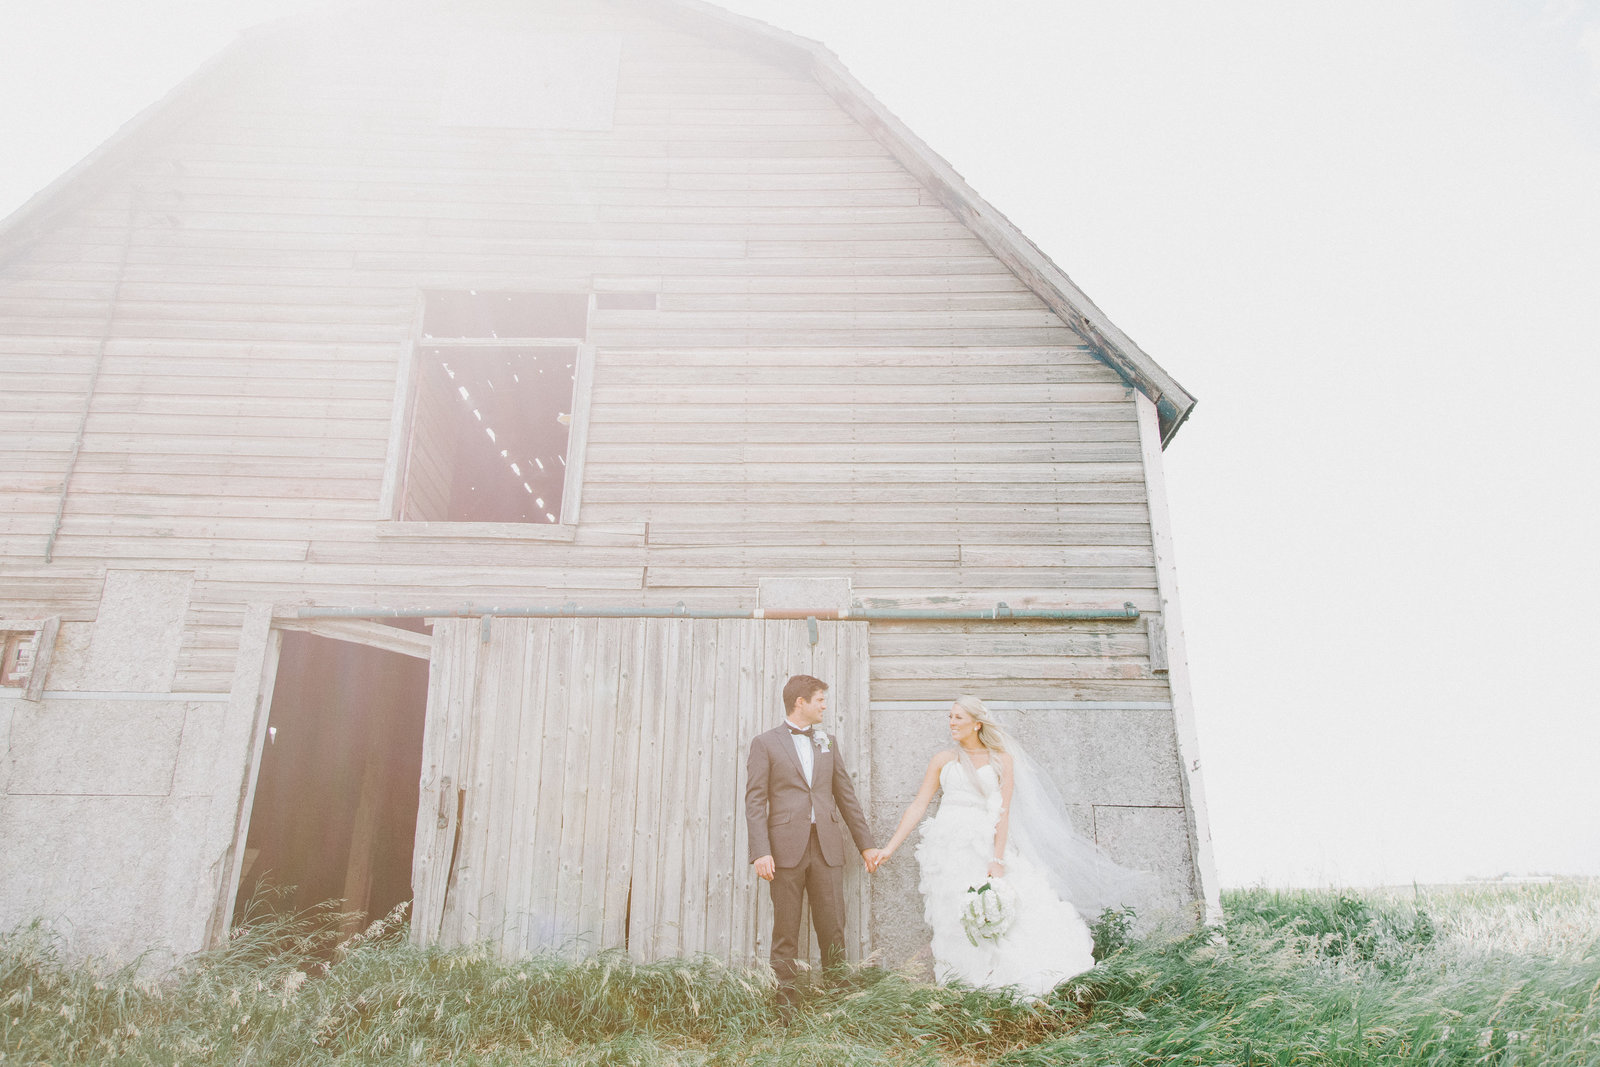 Bride and Groom by barn rustic glam wedding, Regina, SK Wedding Photographer